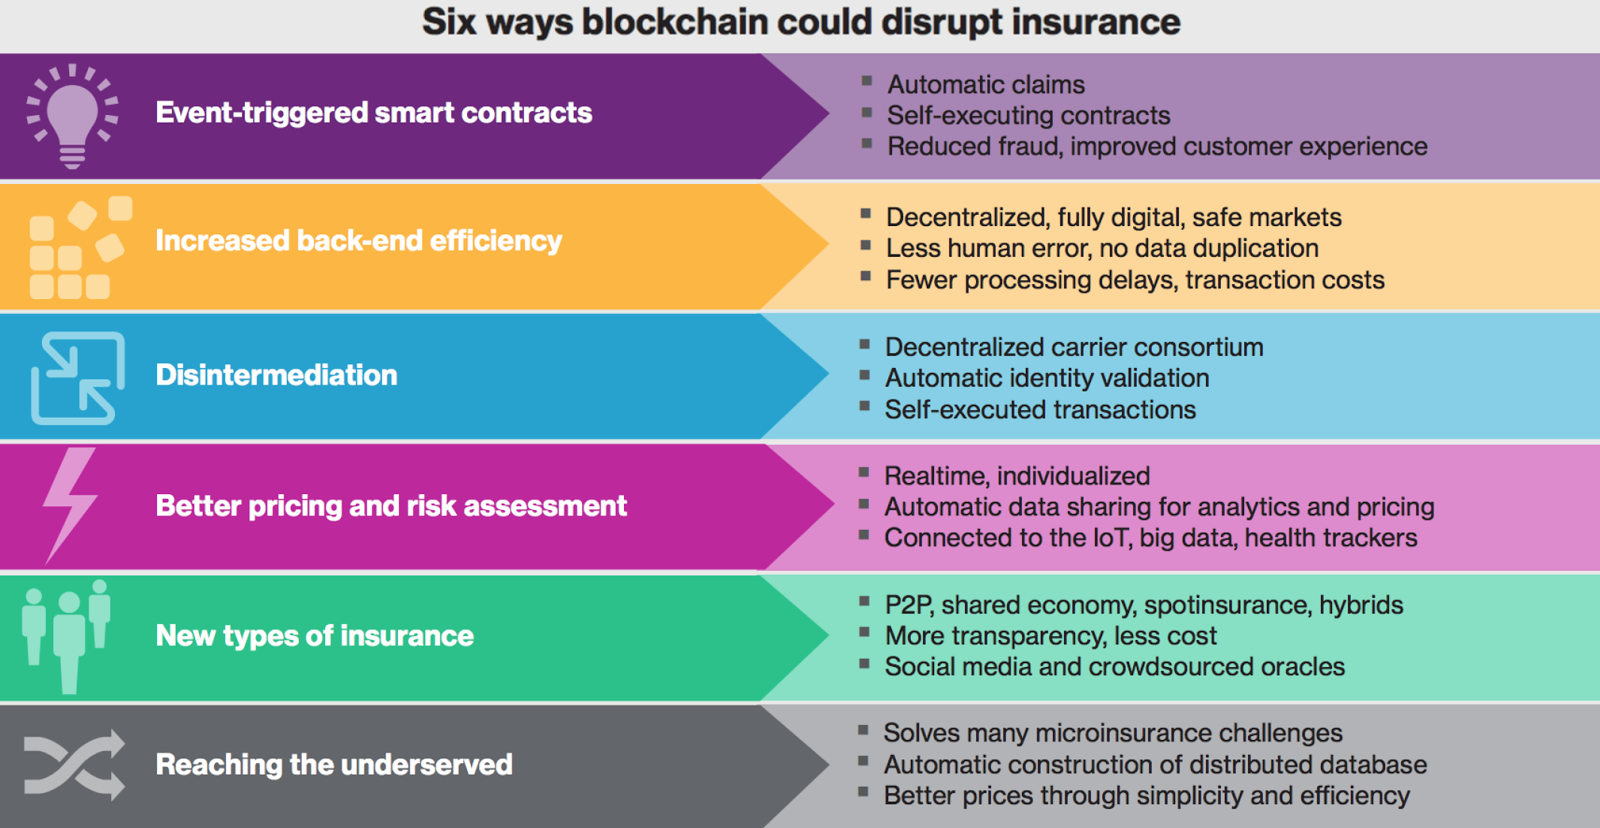 Blockchain-Powered Revolution in the Insurance Industry